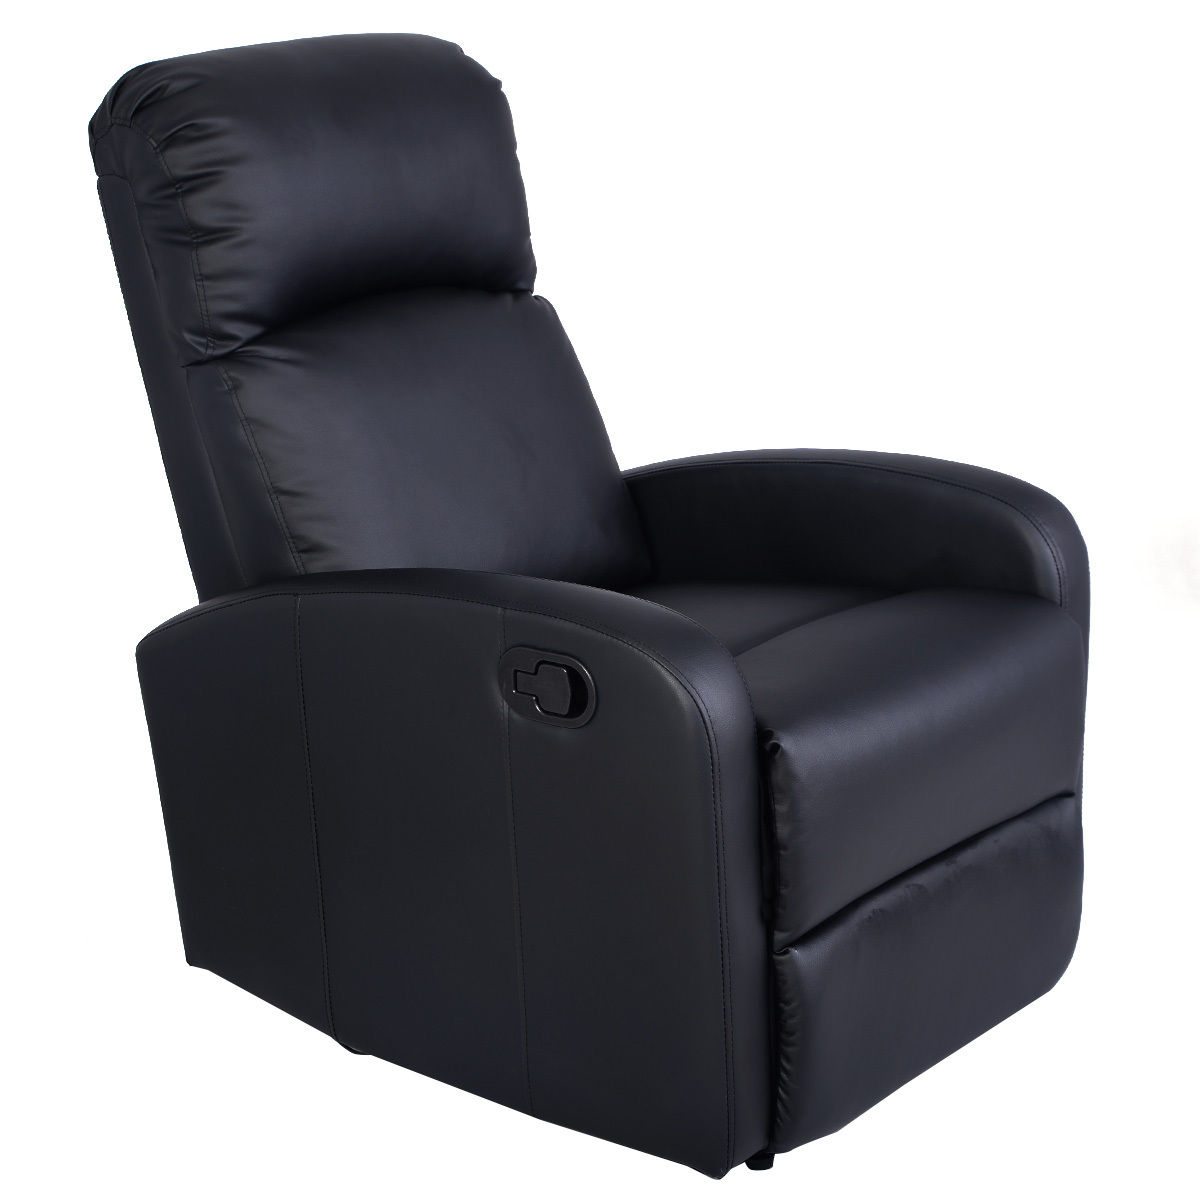 Giantex Manual Recliner Sofa Chair Black Home Living Room Lounger Leather Sofa Seat Theater Leisure Recliner Single Sofa HW51431 living room chair pu seat black red